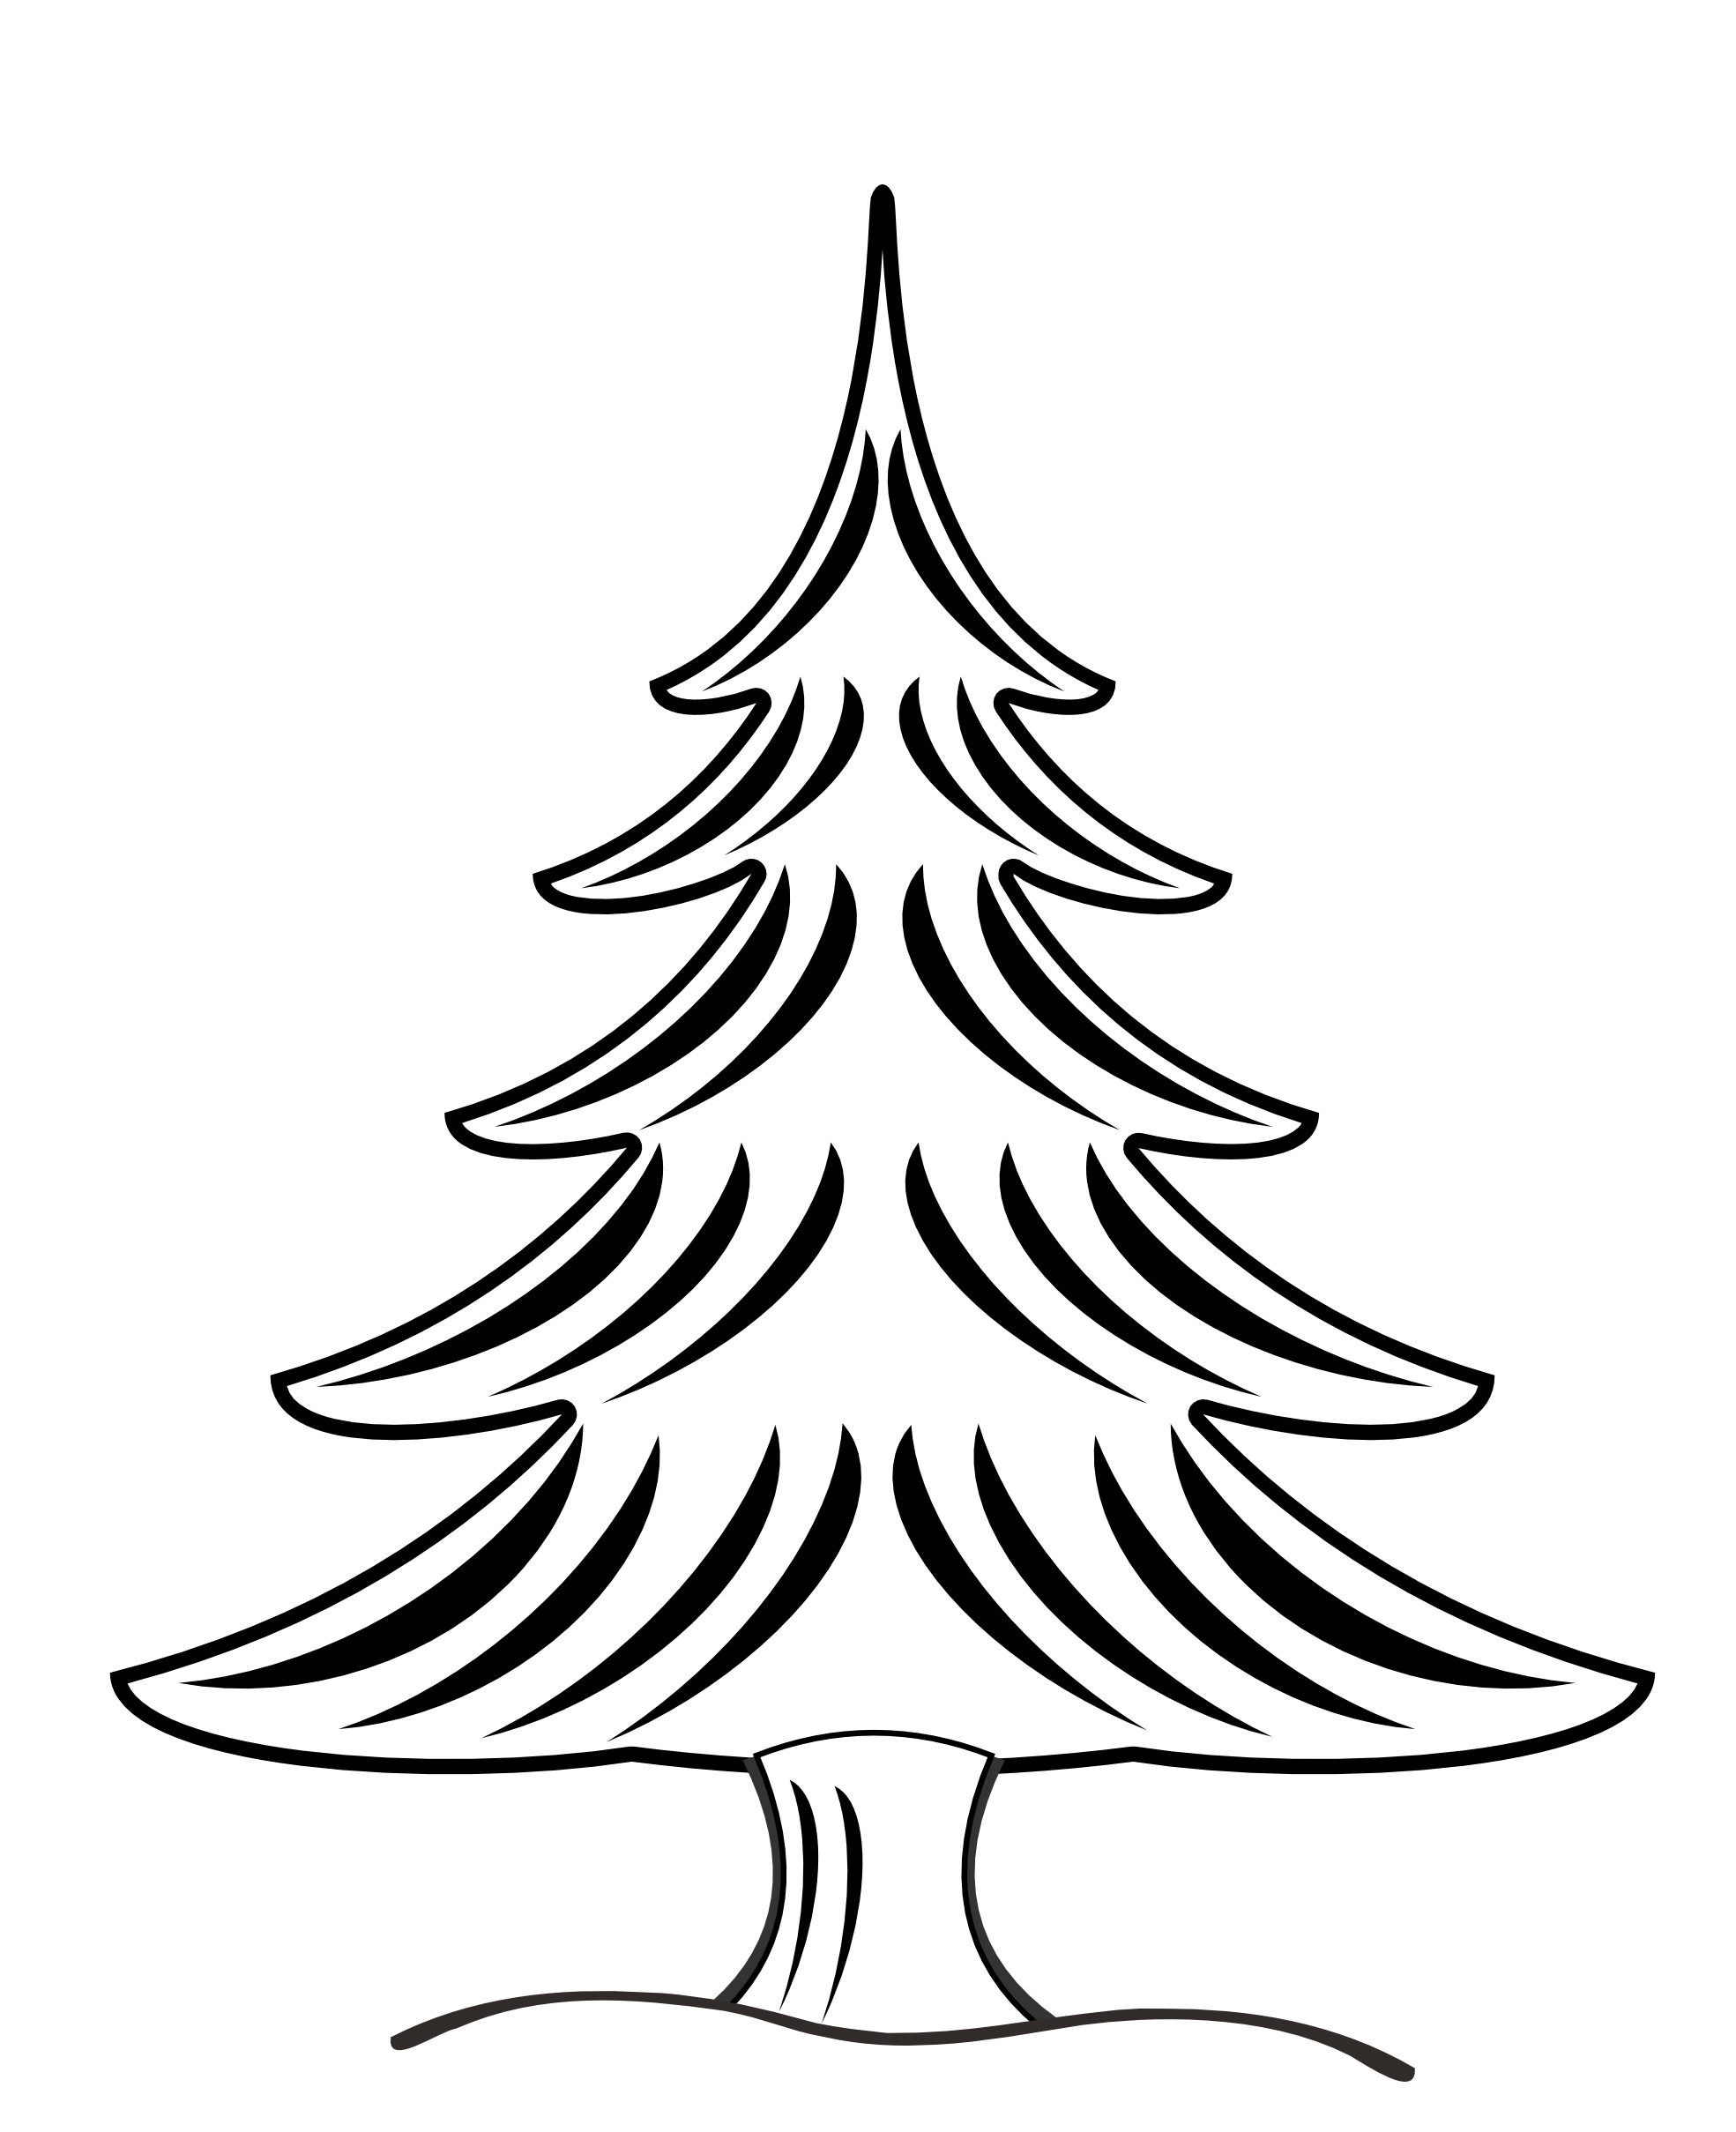 Palm tree christmas clipart black and white picture library stock Treeline Drawing at GetDrawings.com | Free for personal use Treeline ... picture library stock